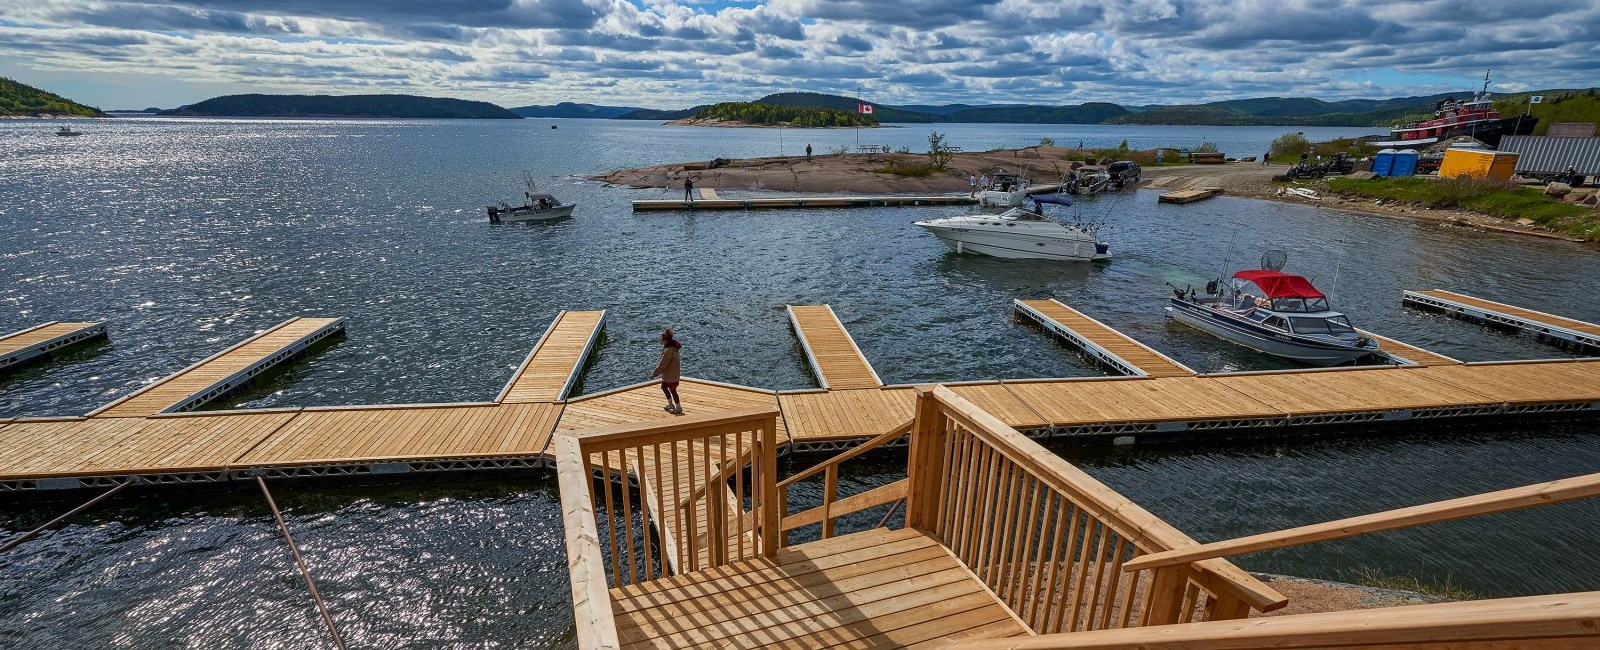 wooden docks and boat launch